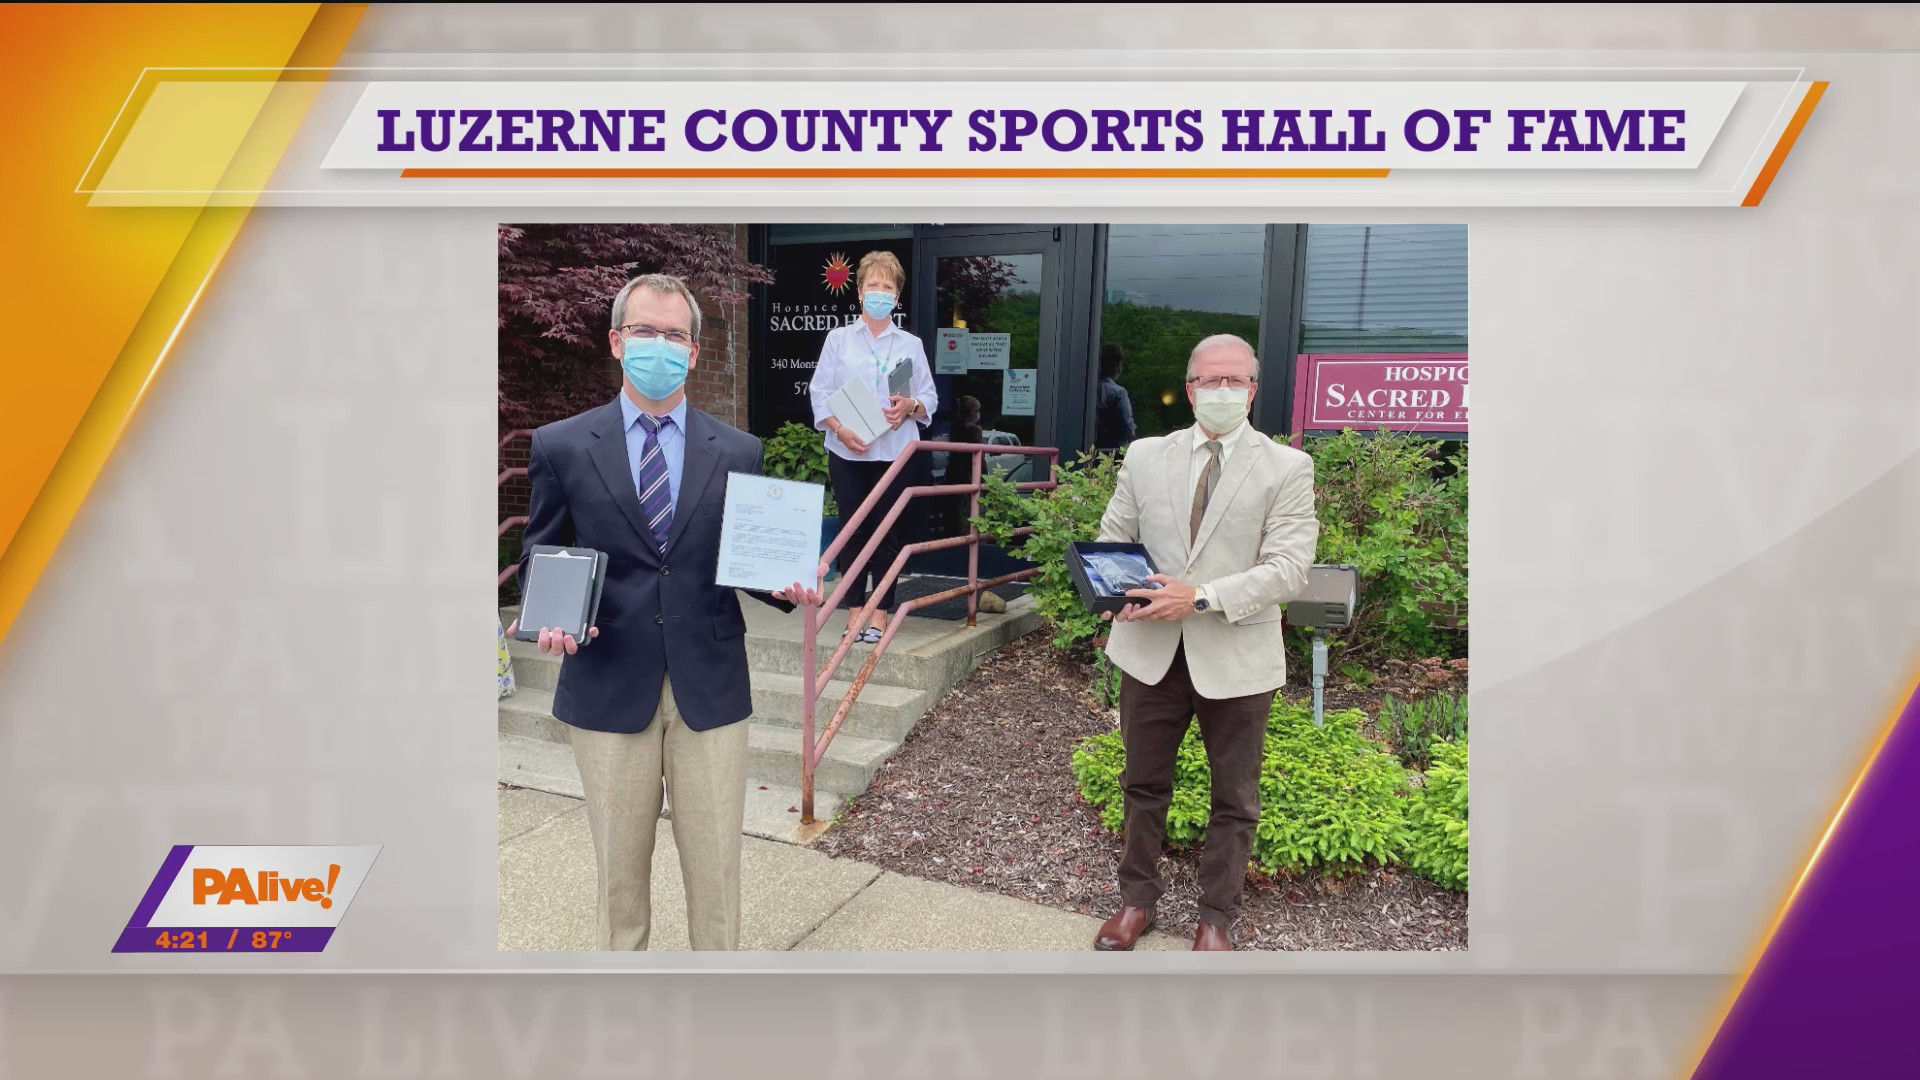 PAlive! Luzerne County Sports Hall of Fame July 31, 2020